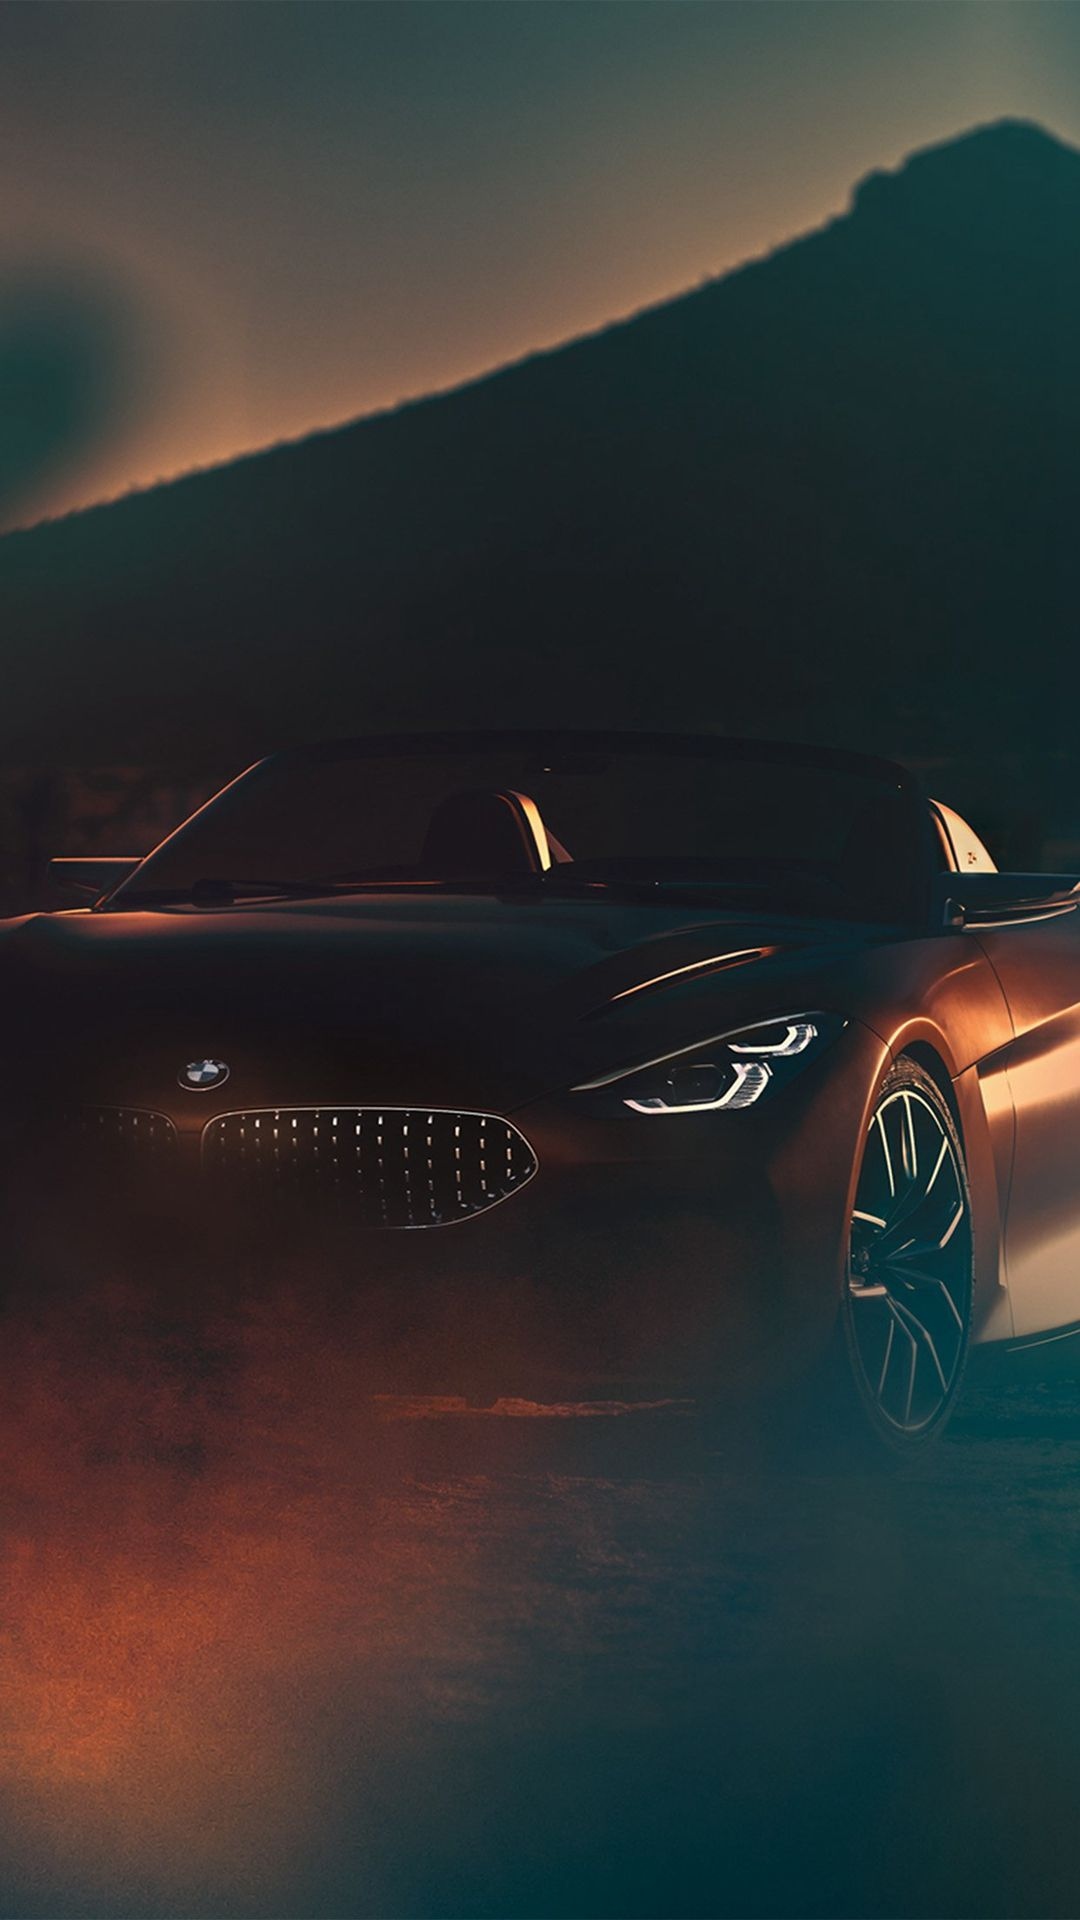 Join 425,000 subscribers and get. Bmw Car Photo Illustration Art Iphone 8 Wallpaper Car Wallpapers Car Photos Bmw Wallpapers